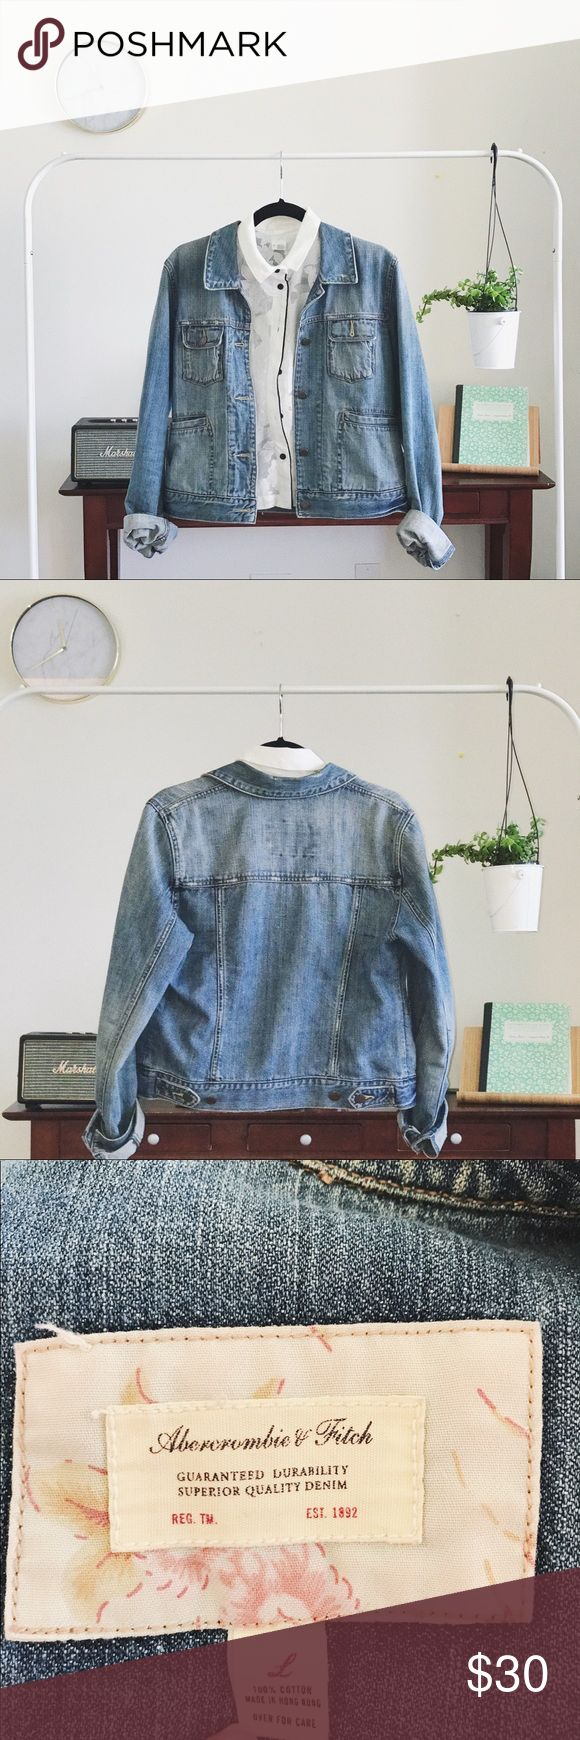 • Jean Jacket • This is a Large and I wear a size Small so this will fit a variety of sizes depending if you want it more fit or oversized. Used but well taken care of. This has a very comfortable fit meaning it's not very stiff. I love this jacket for it's front pockets, I just have so many jean jackets, I just need one good one. This jean jacket would go well with neutral white black or light brown colors. Abercrombie & Fitch Jackets & Coats Jean Jackets